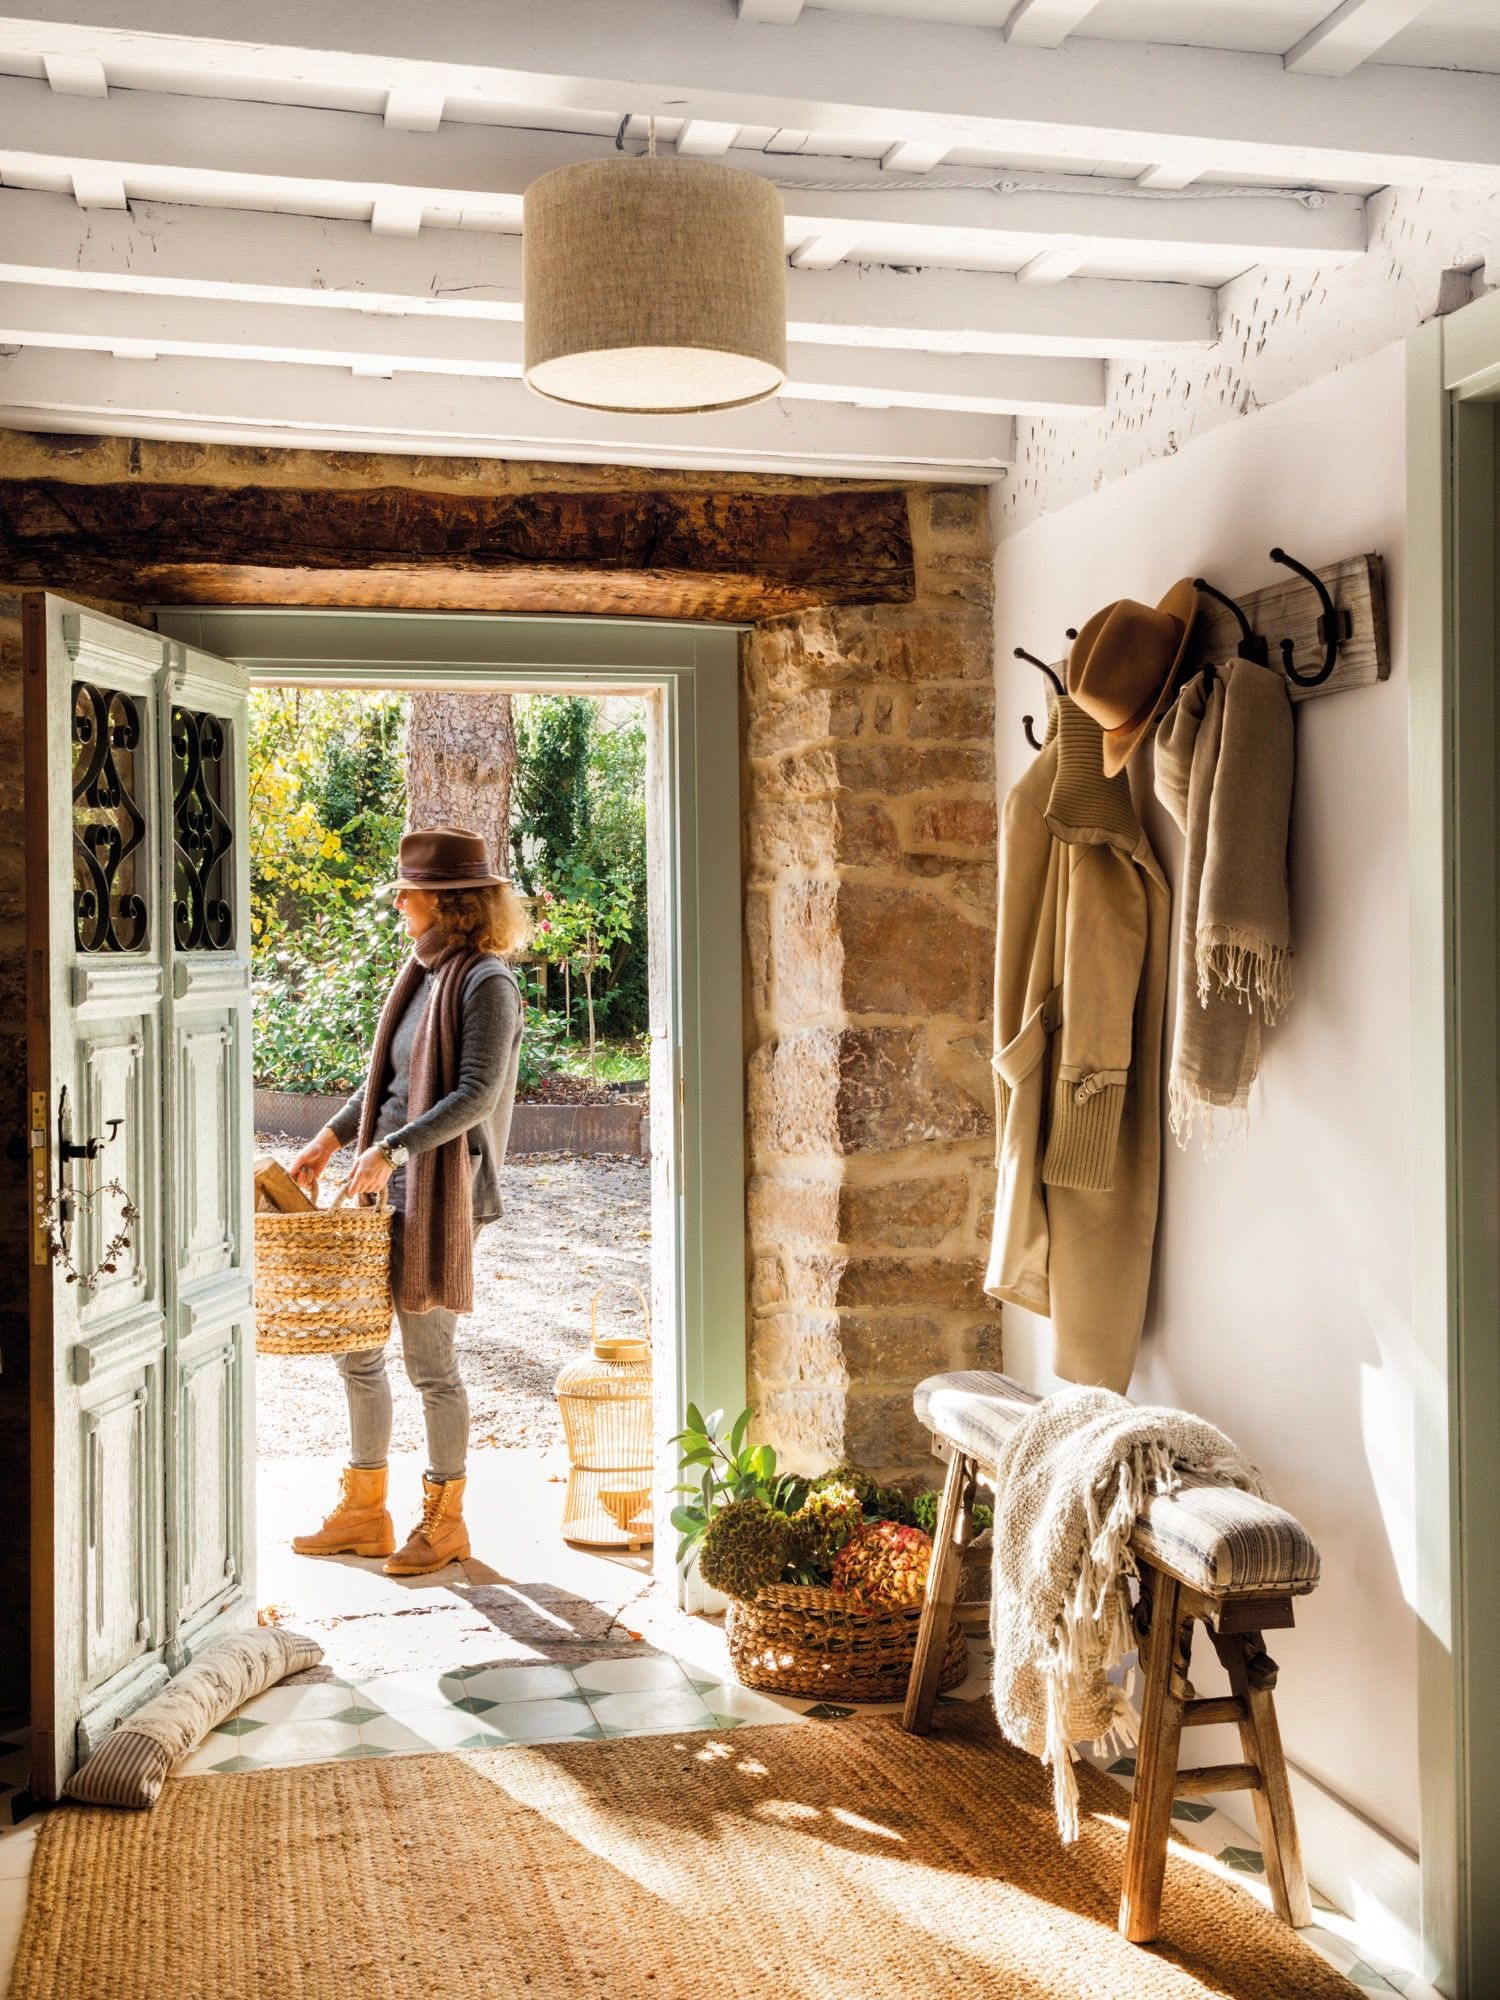 Memorias de una casa | Country living, Entry hallway and Hall